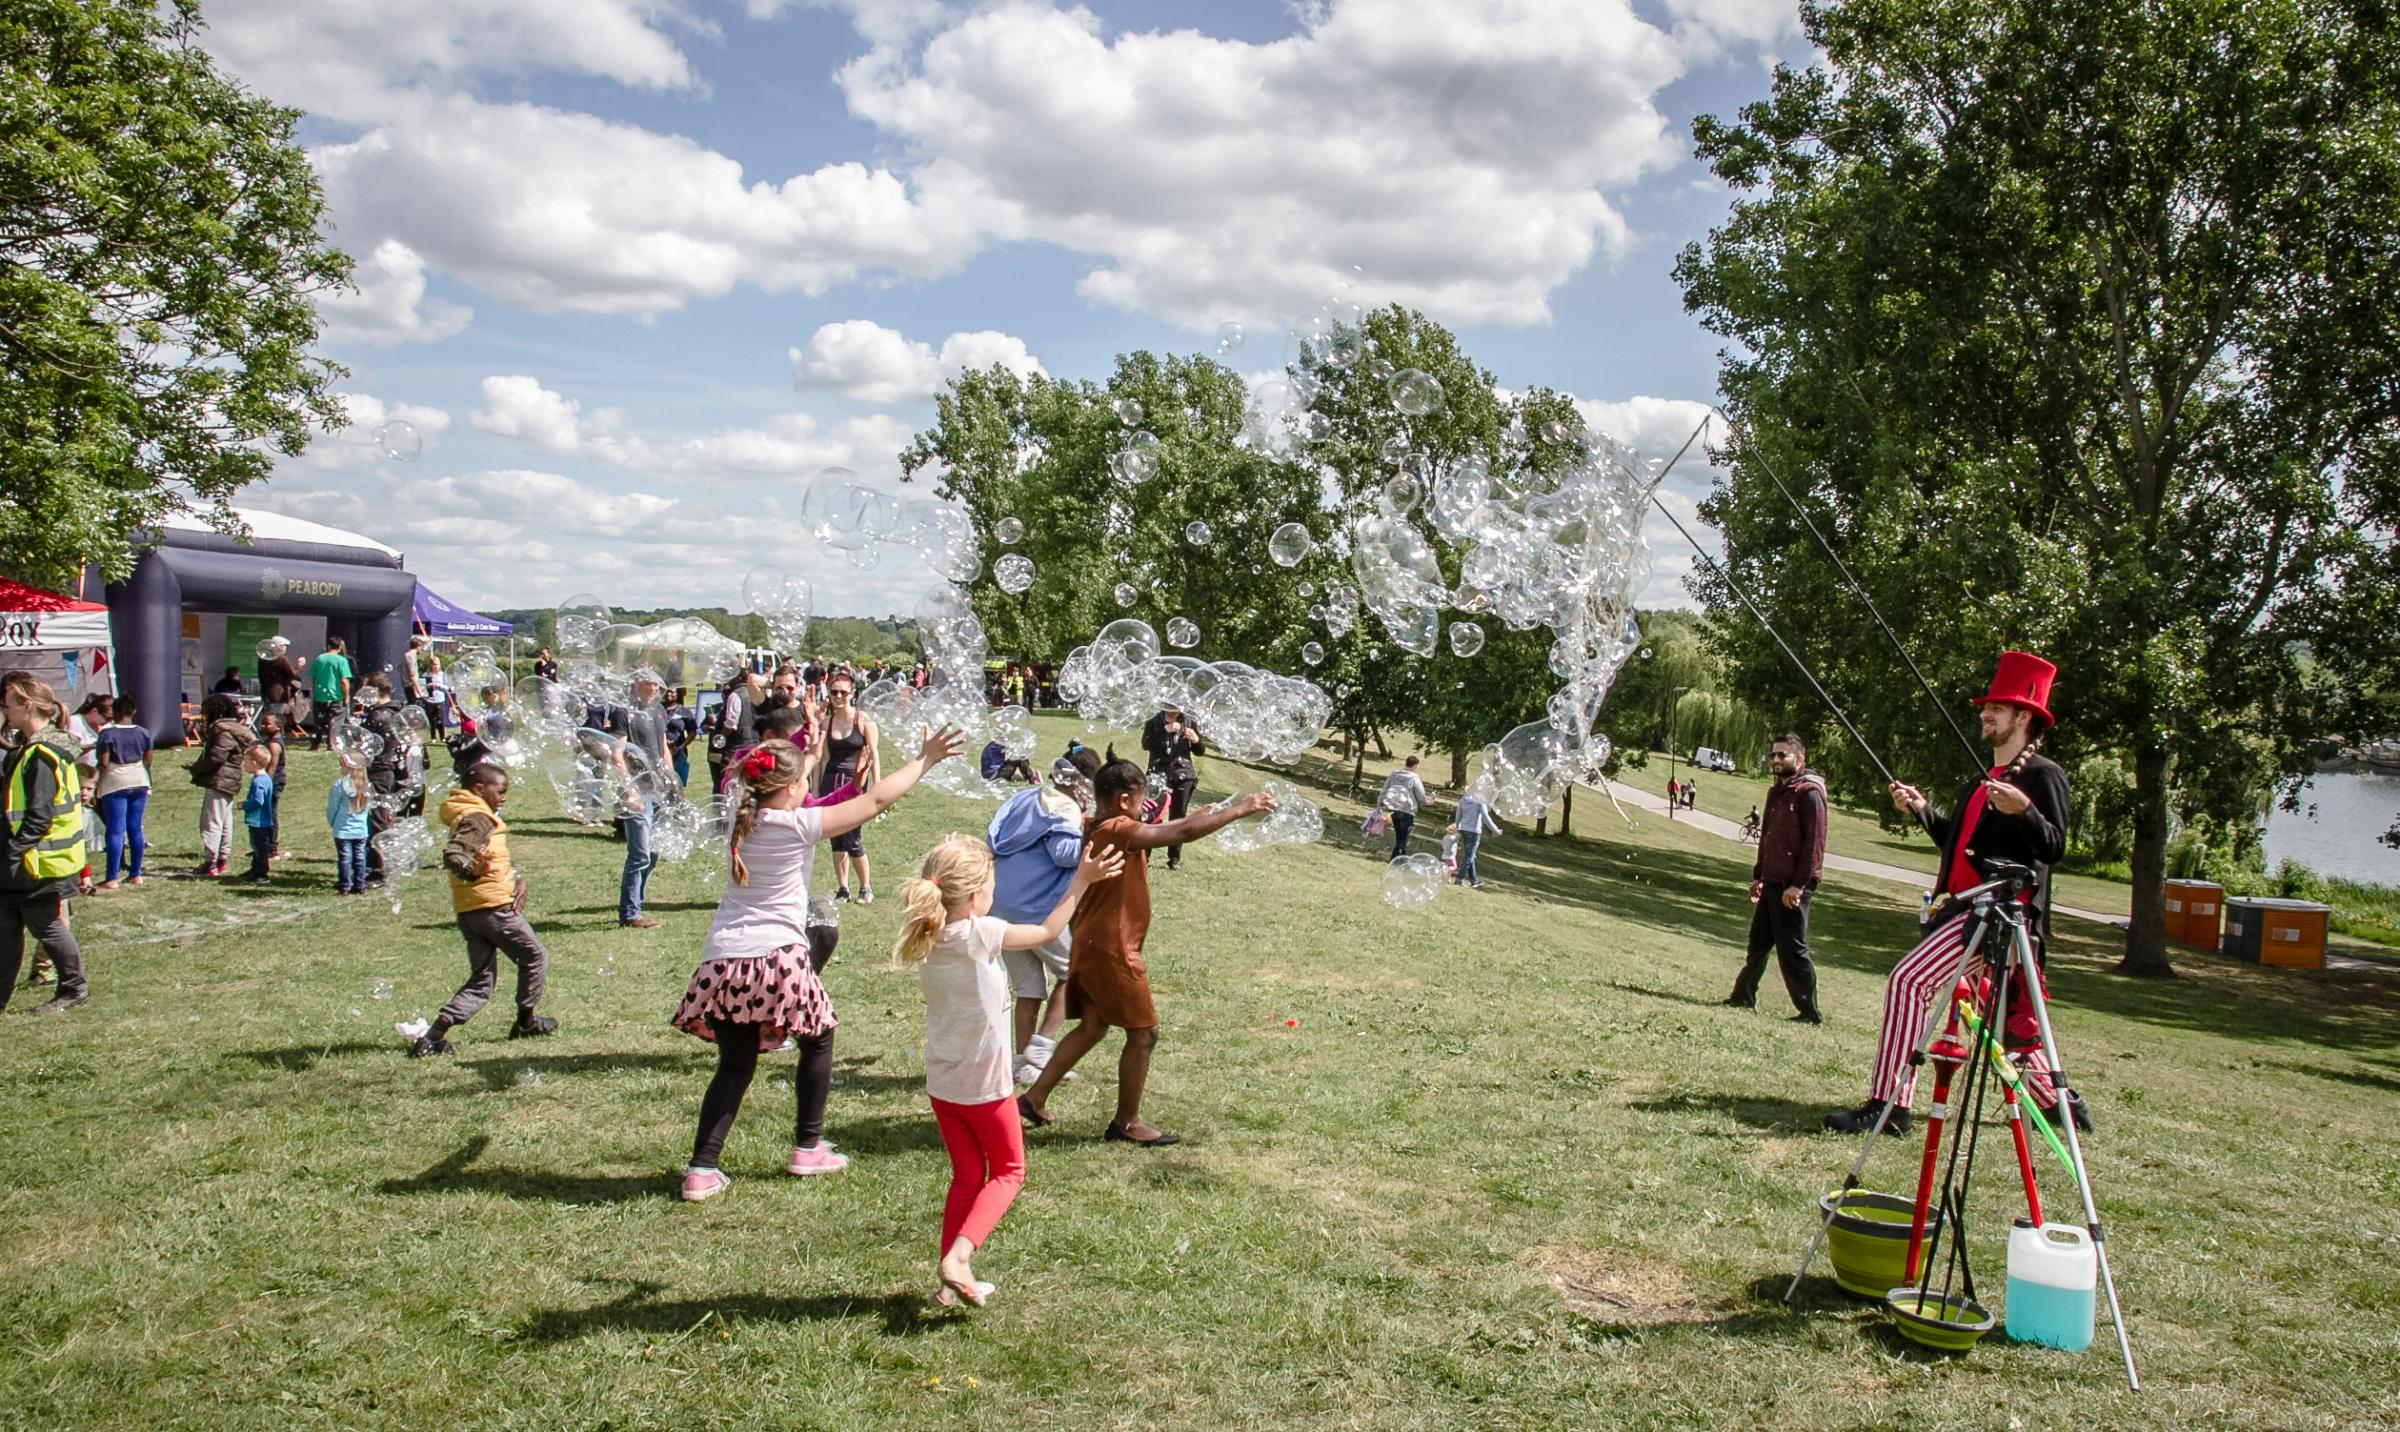 A festival with town fete and light shows is coming to Thamesmead